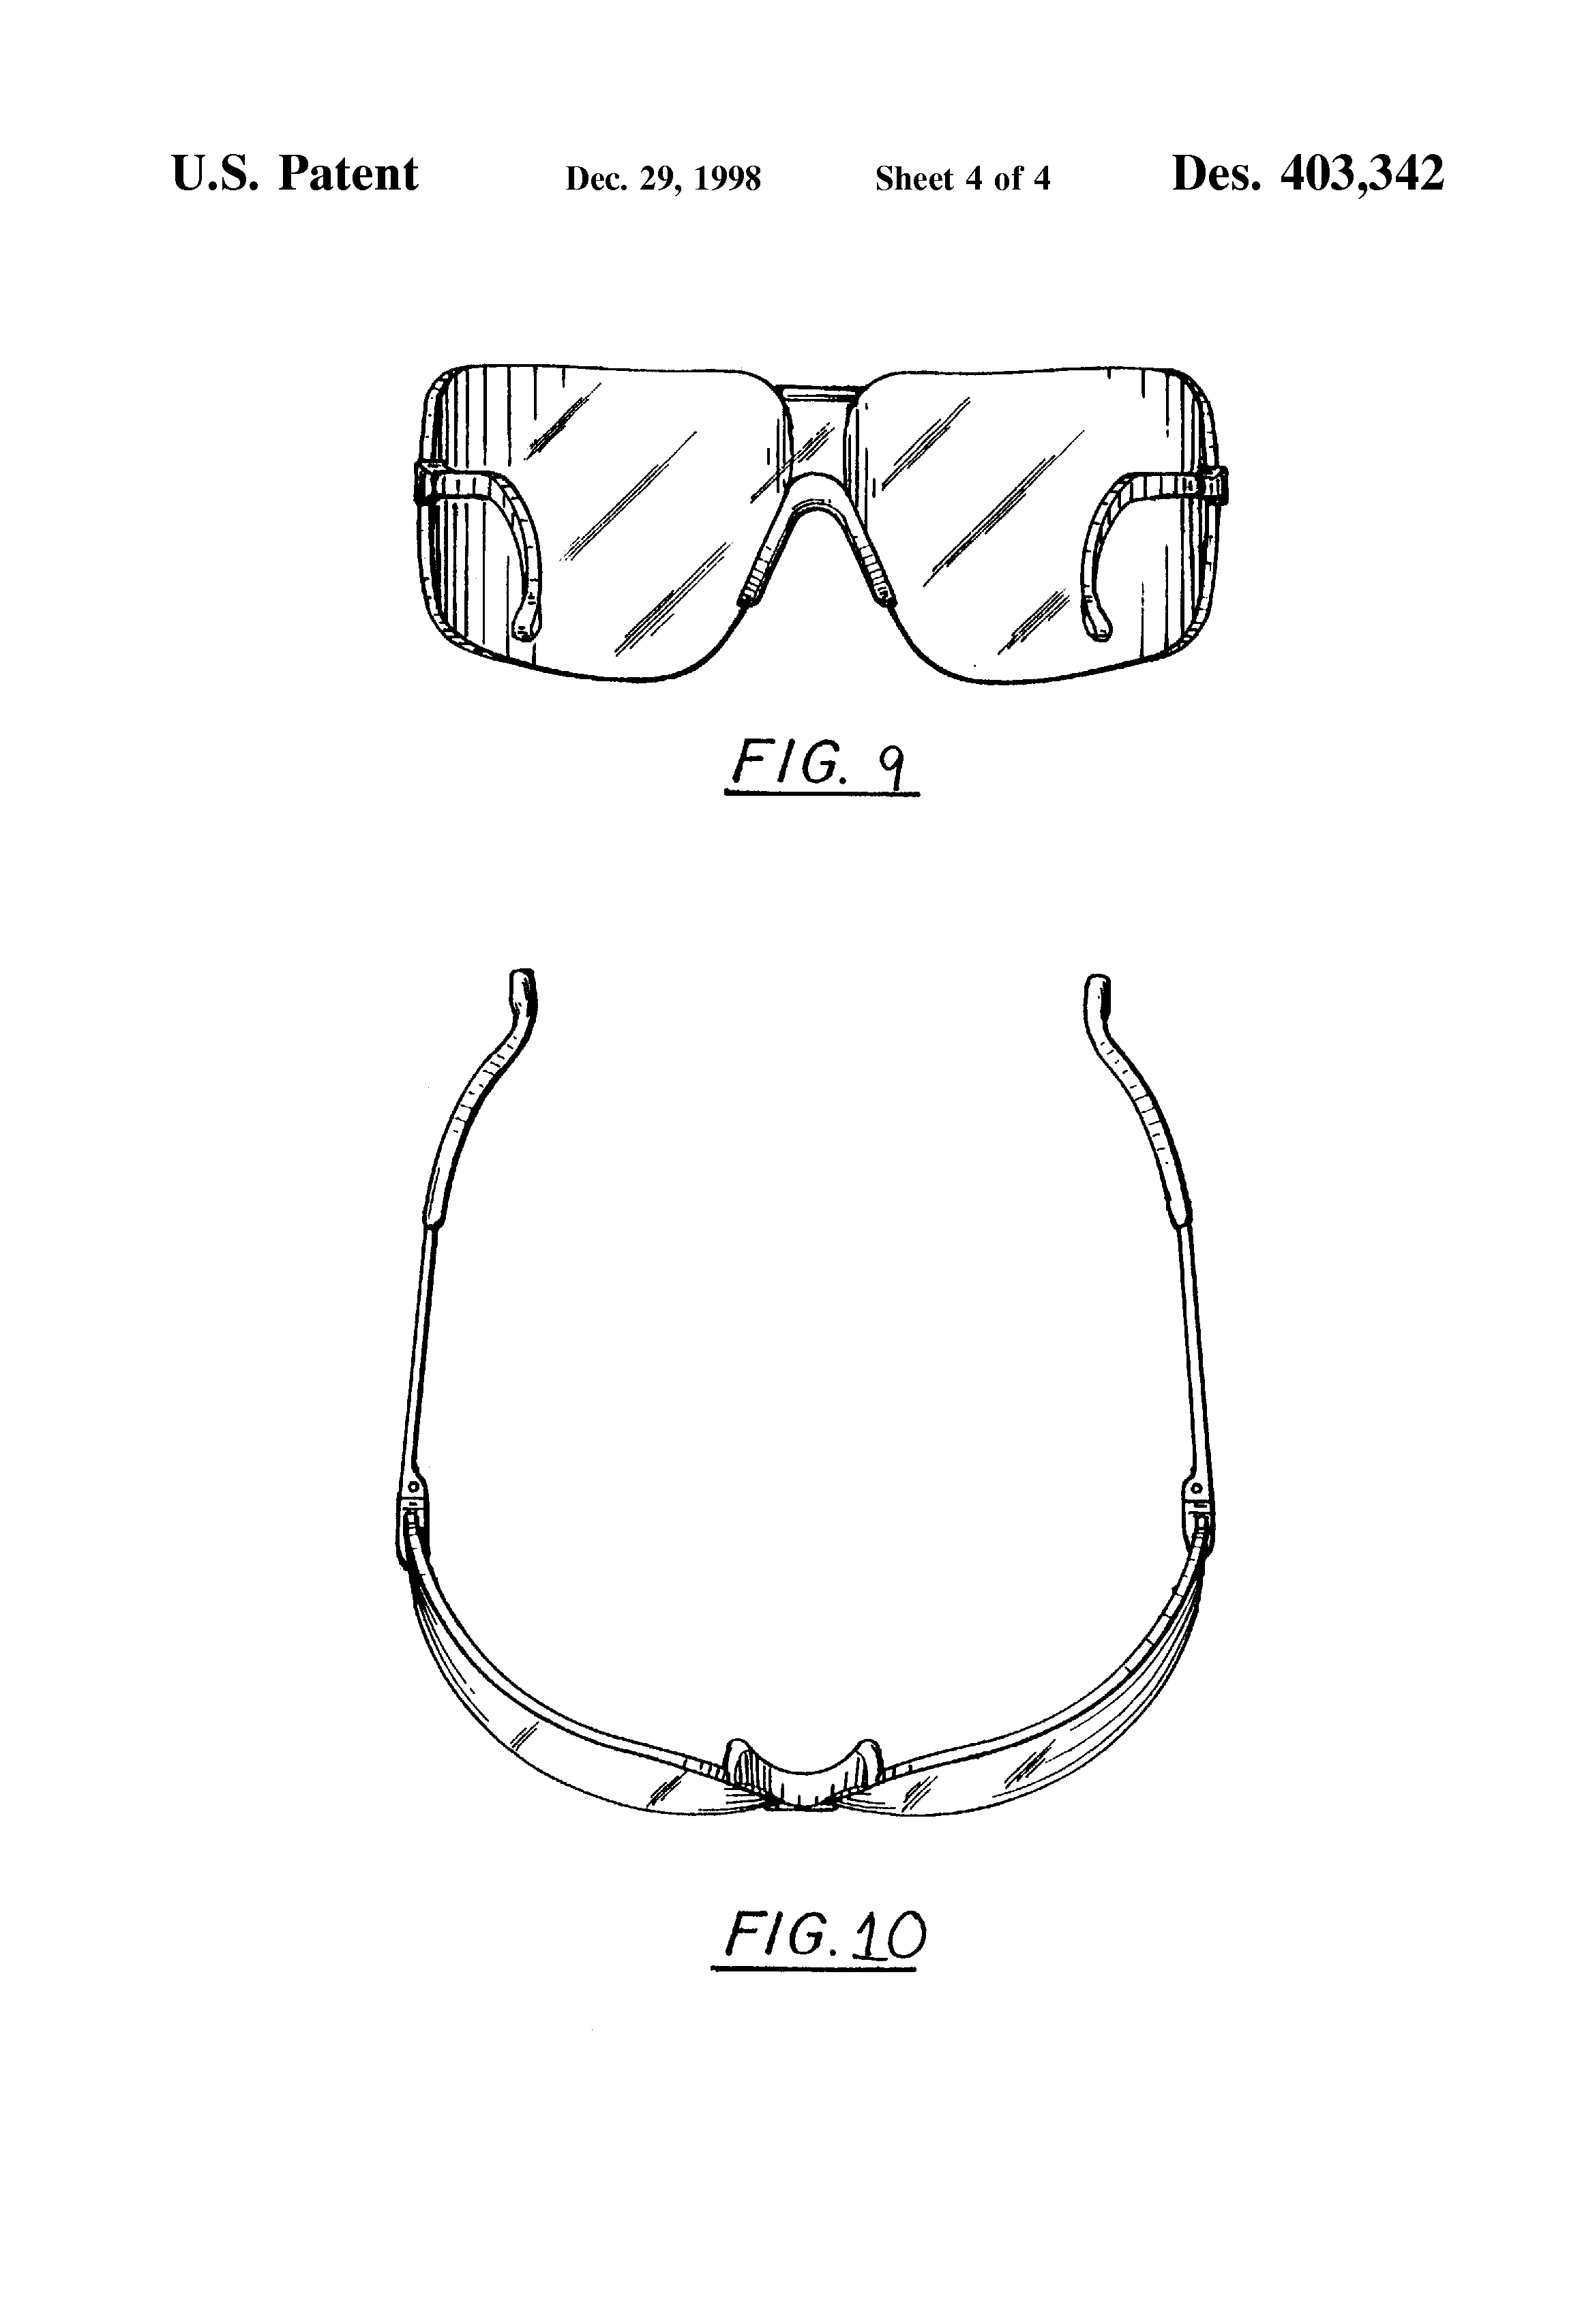 eyewear direct  usd403342 - eyewear